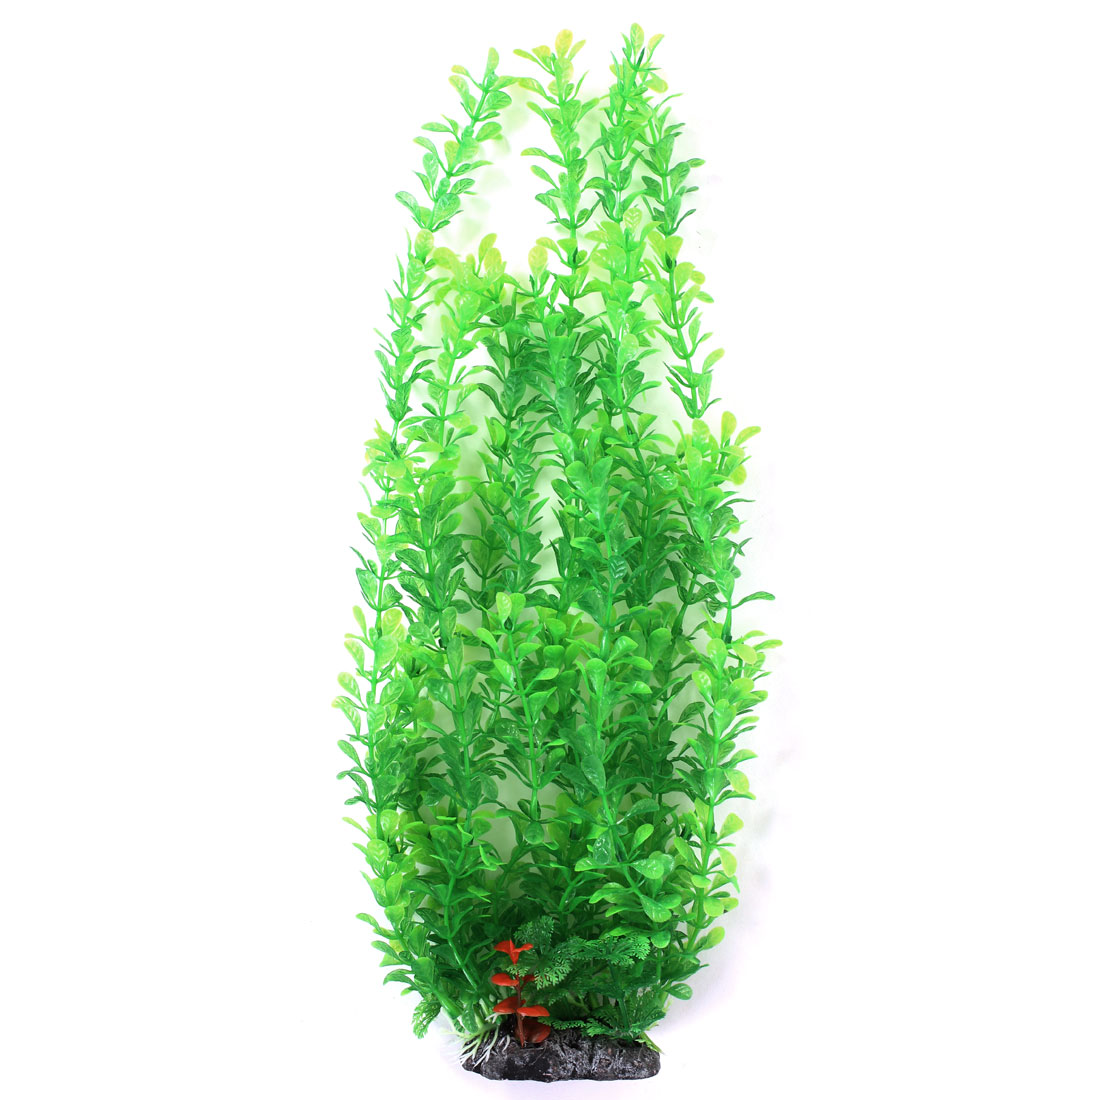 Aquarium Fish Tank Plastic Artificial Underwater Grass Plant Ornament